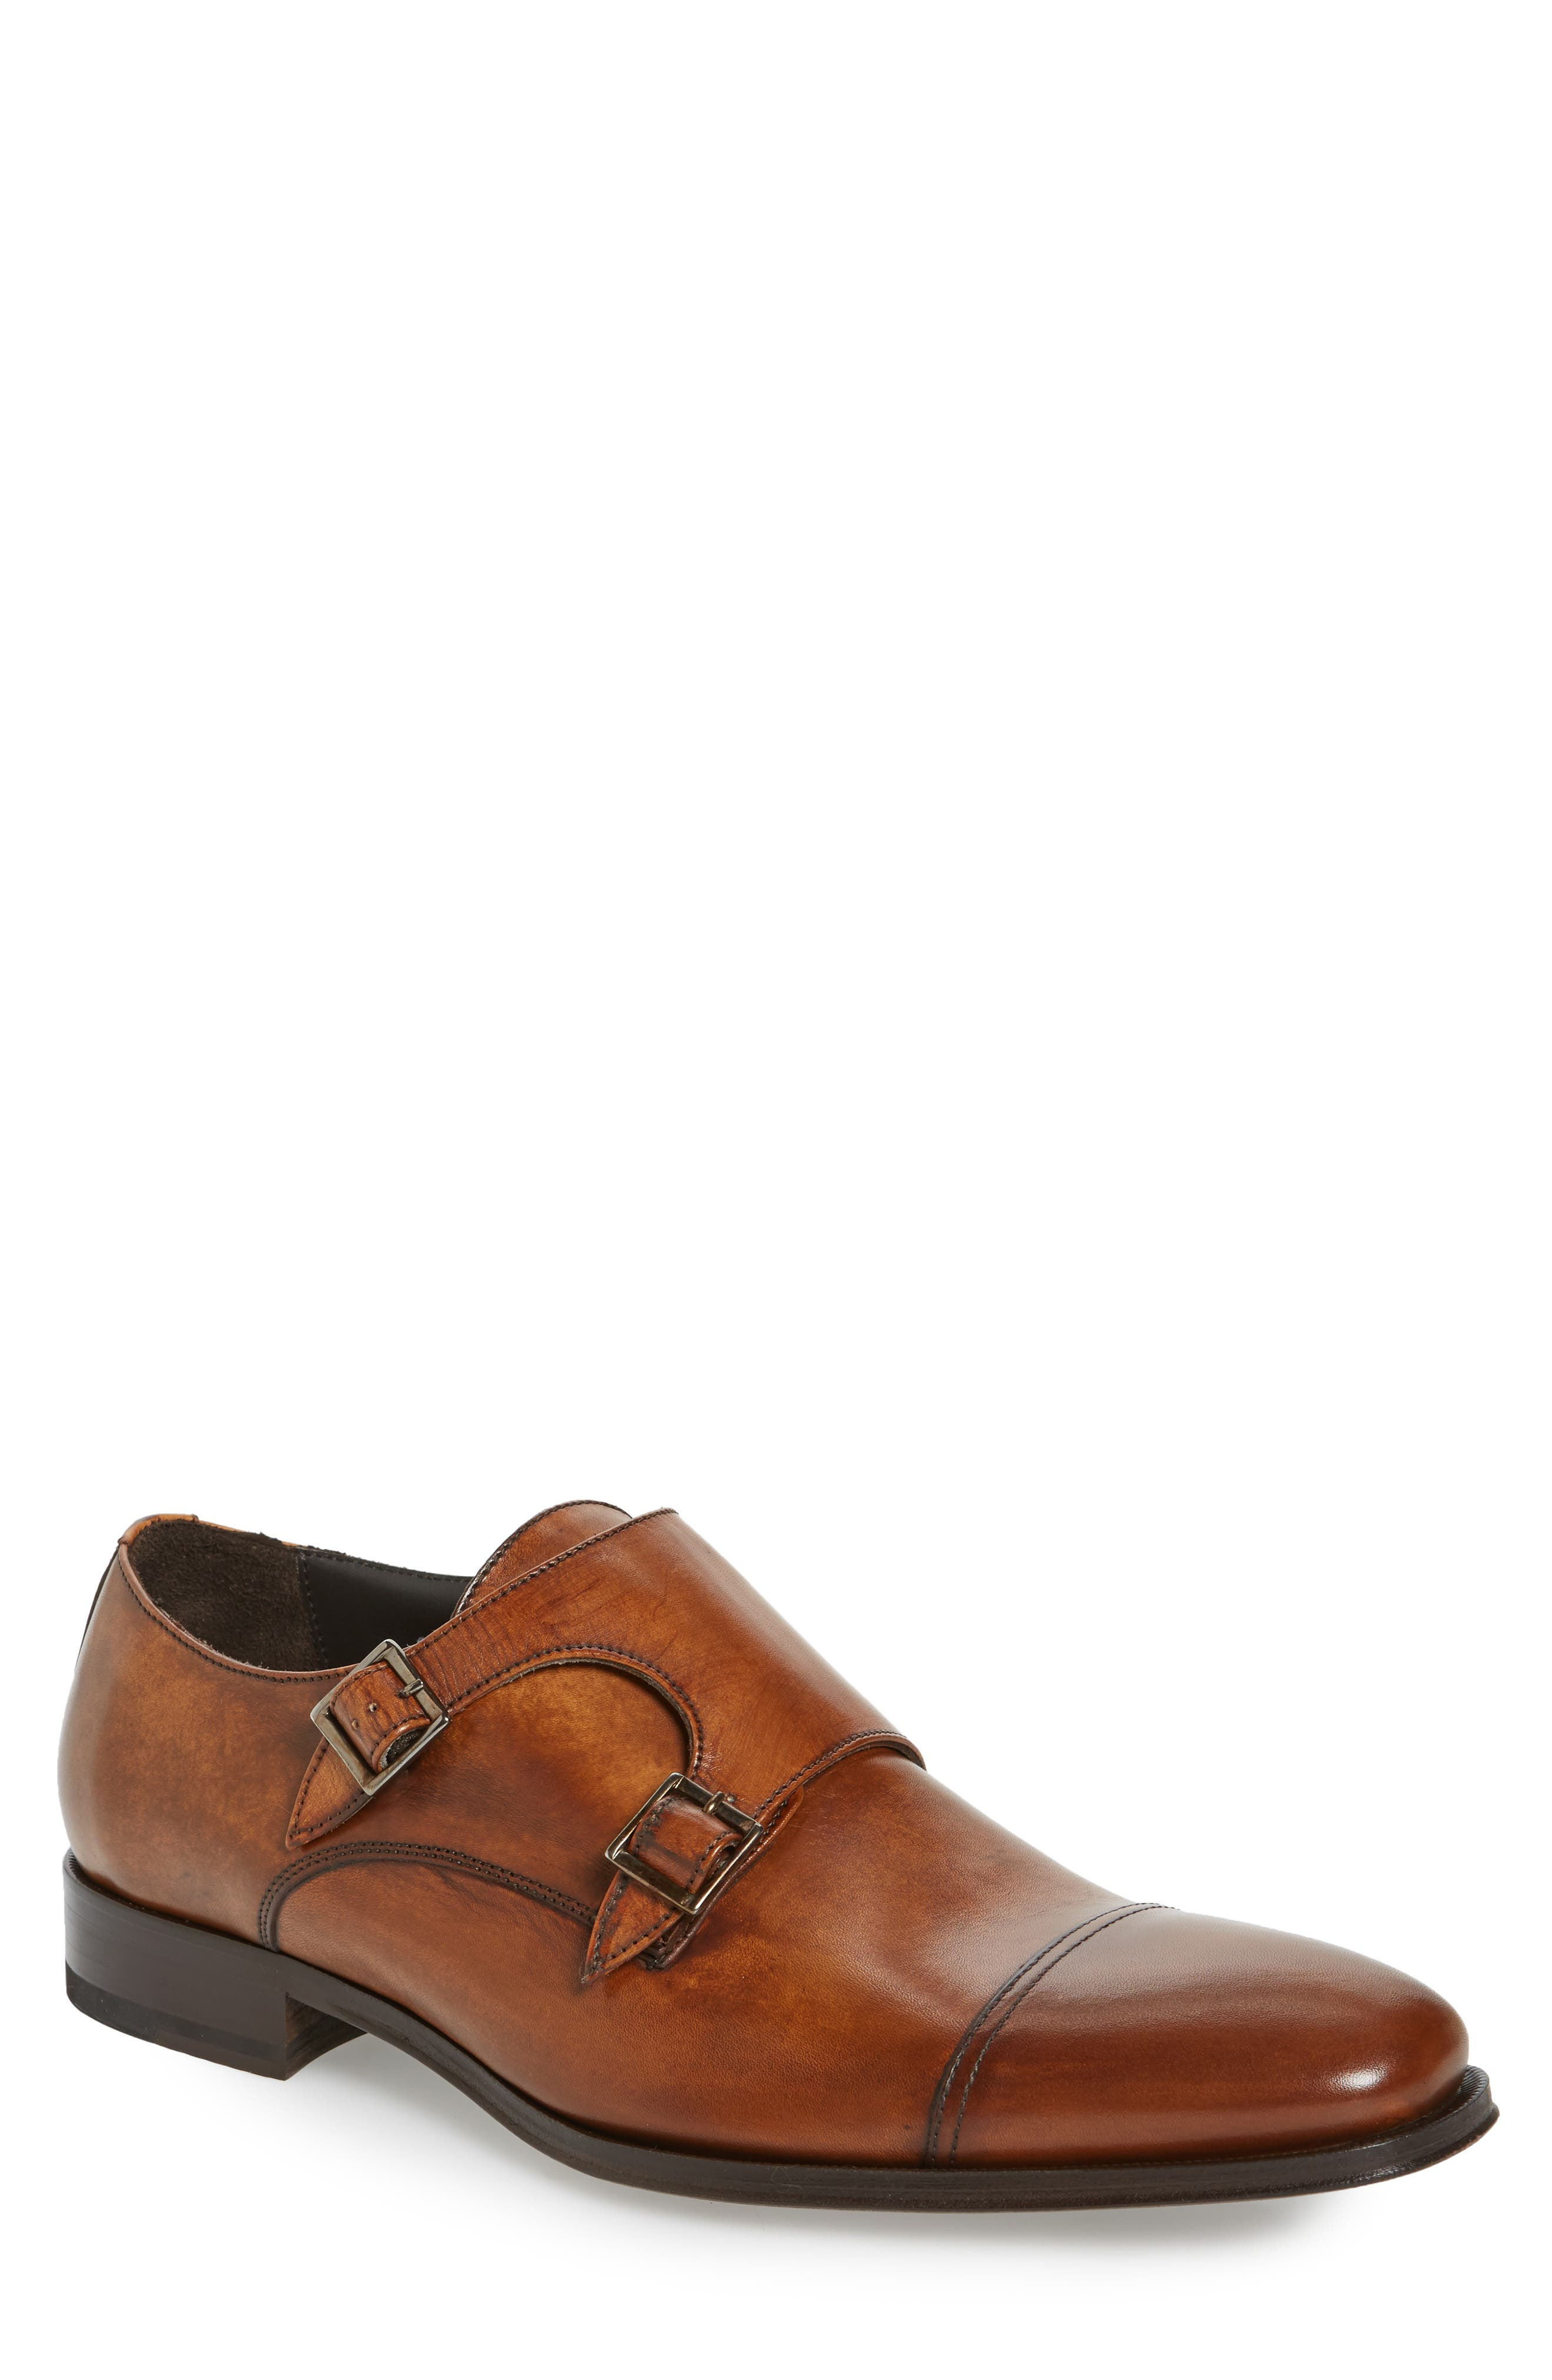 Alternate Image 1 Selected - To Boot New York 'Grant' Double Monk Shoe